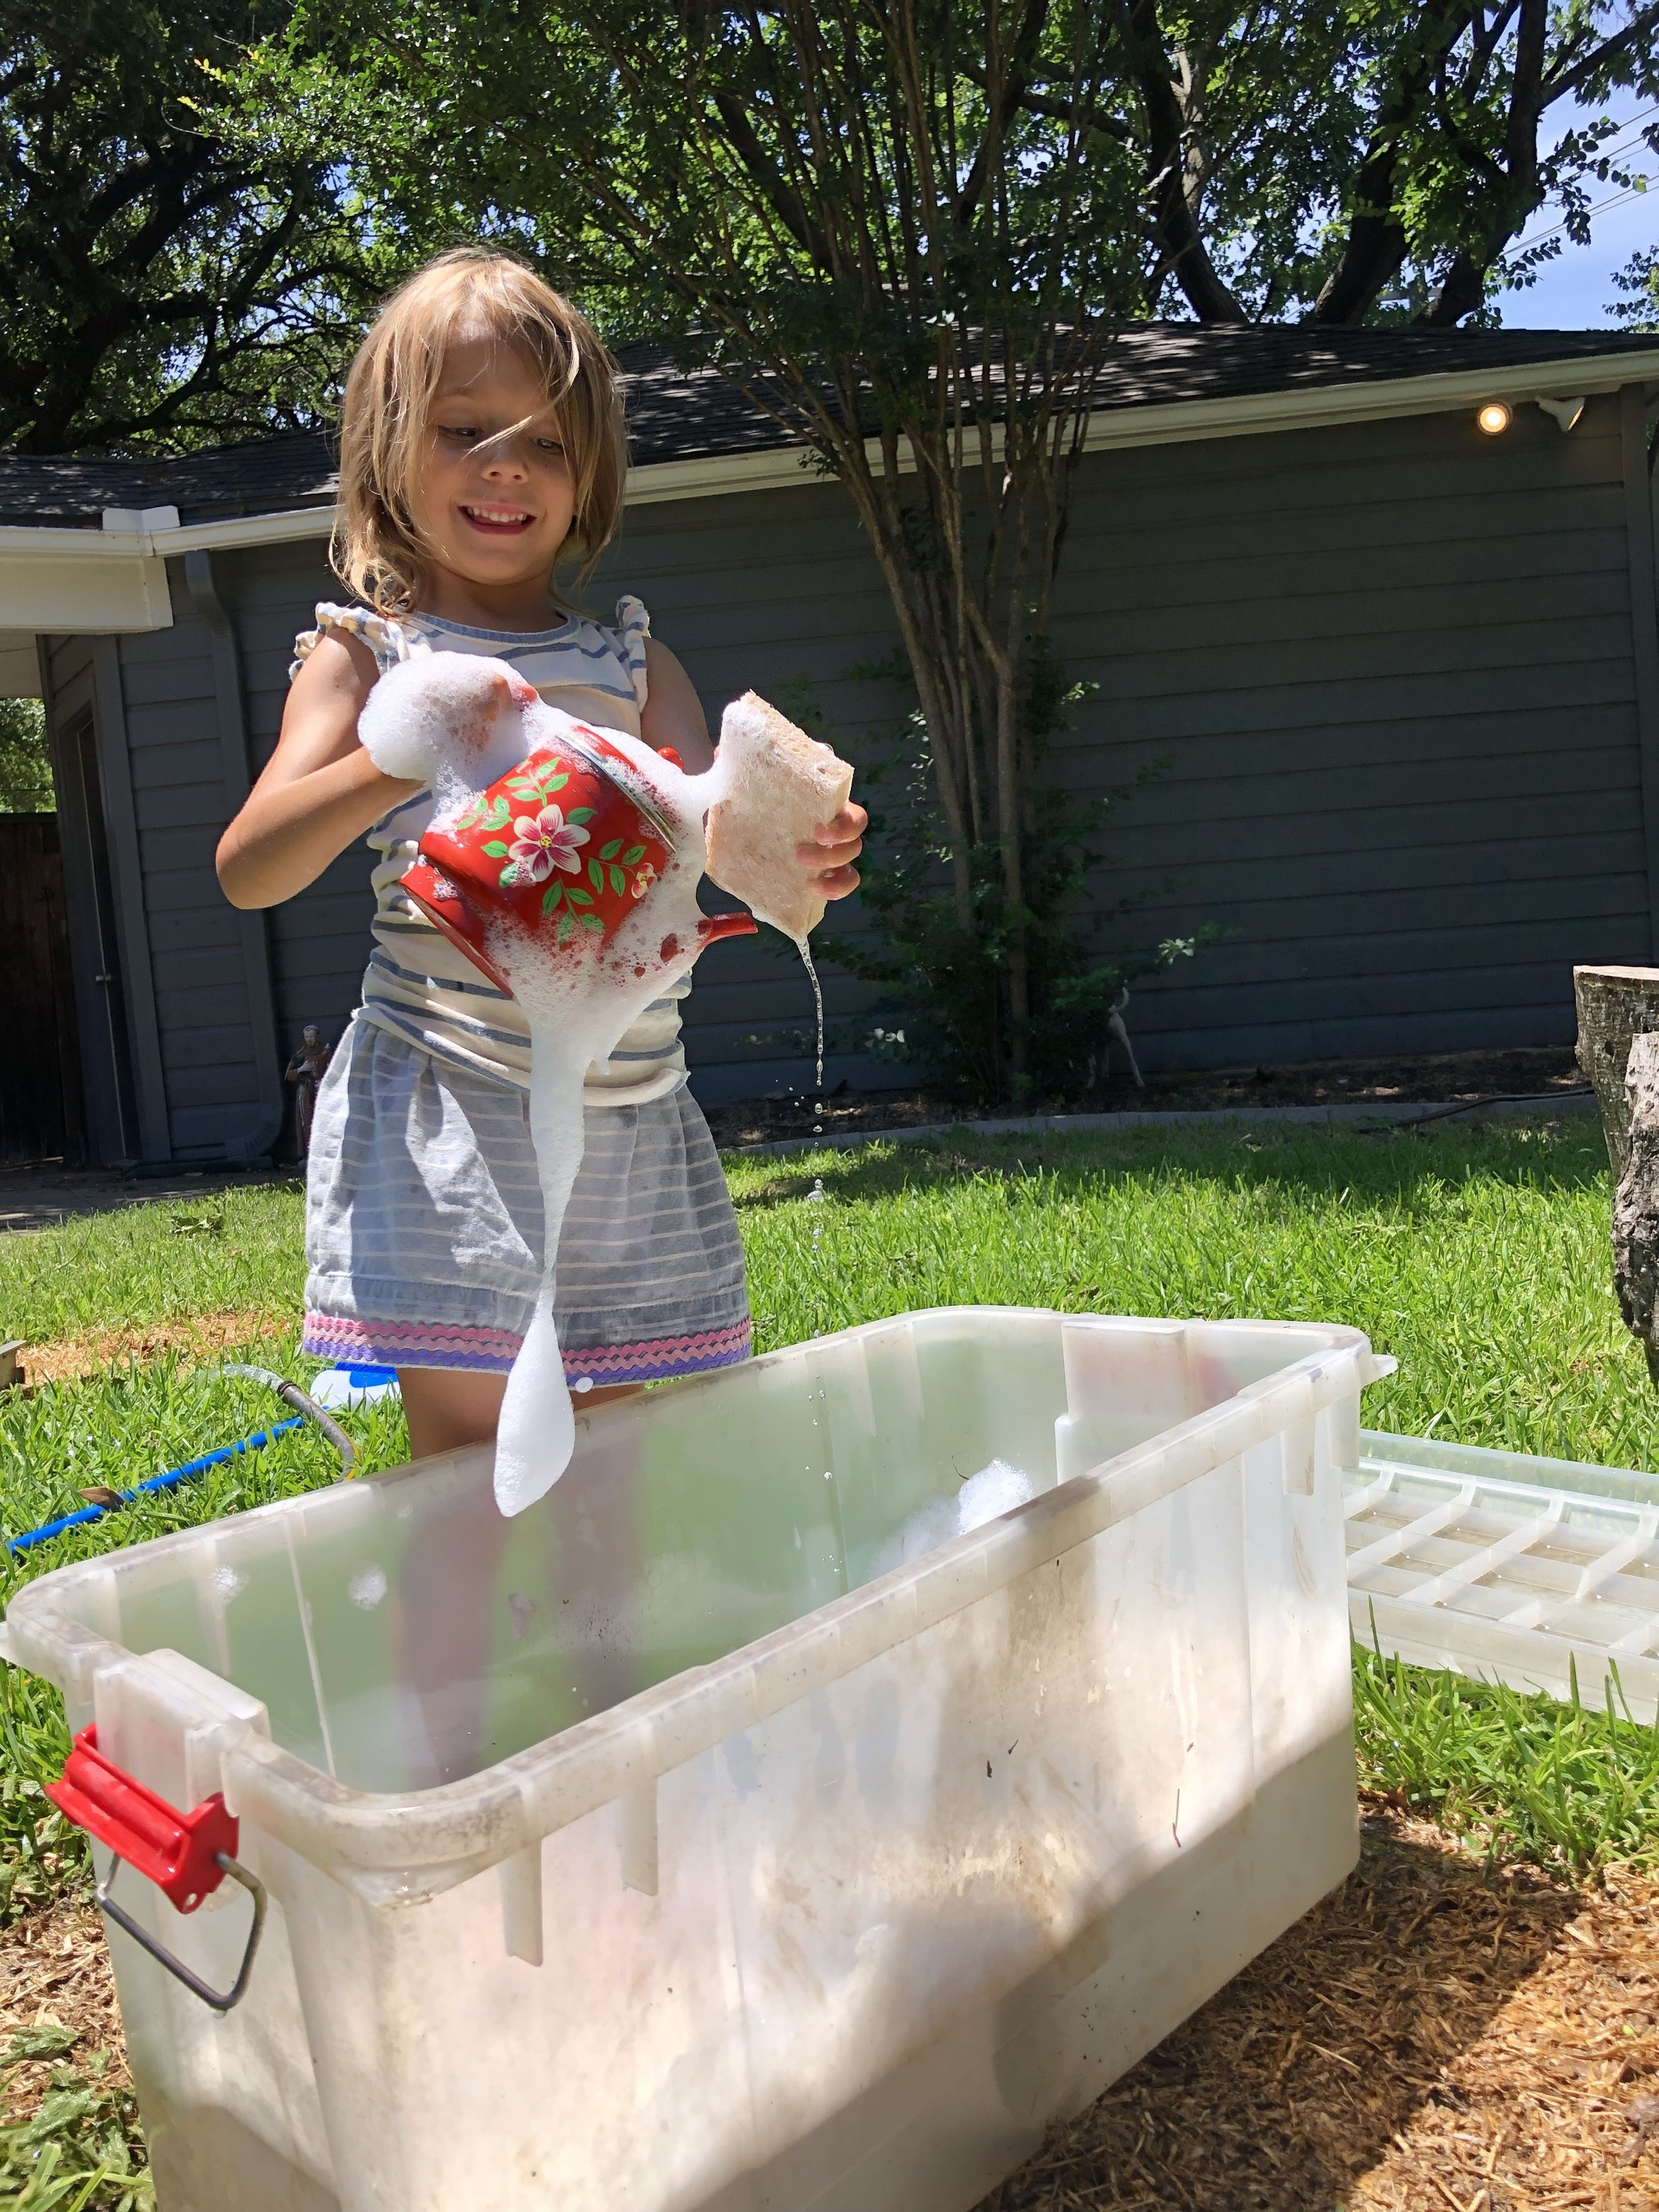 outdoor chores for kids.jpg